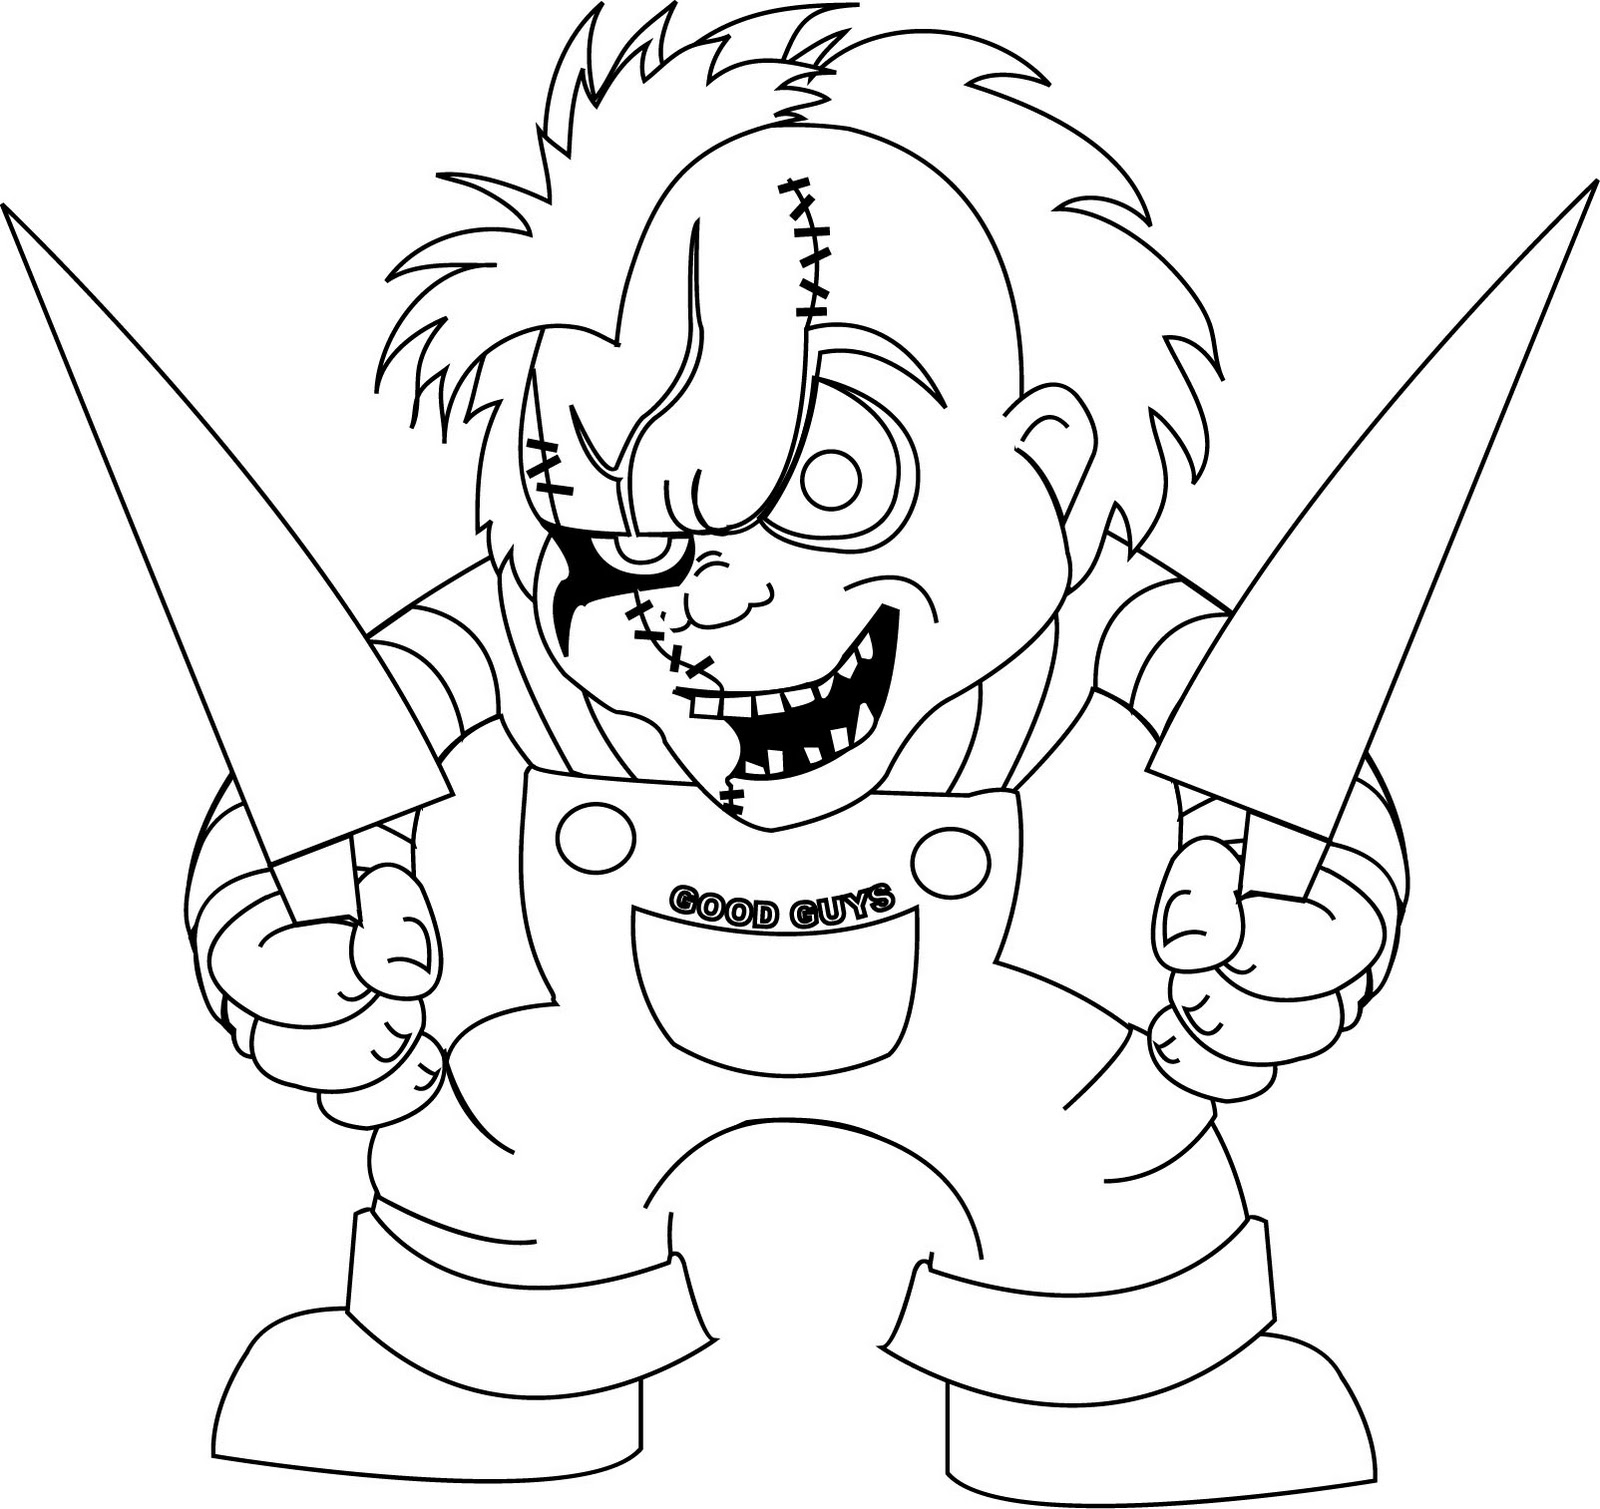 6 Chucky Killer Colourin Disney Princess Coloring Pages Doll Palace